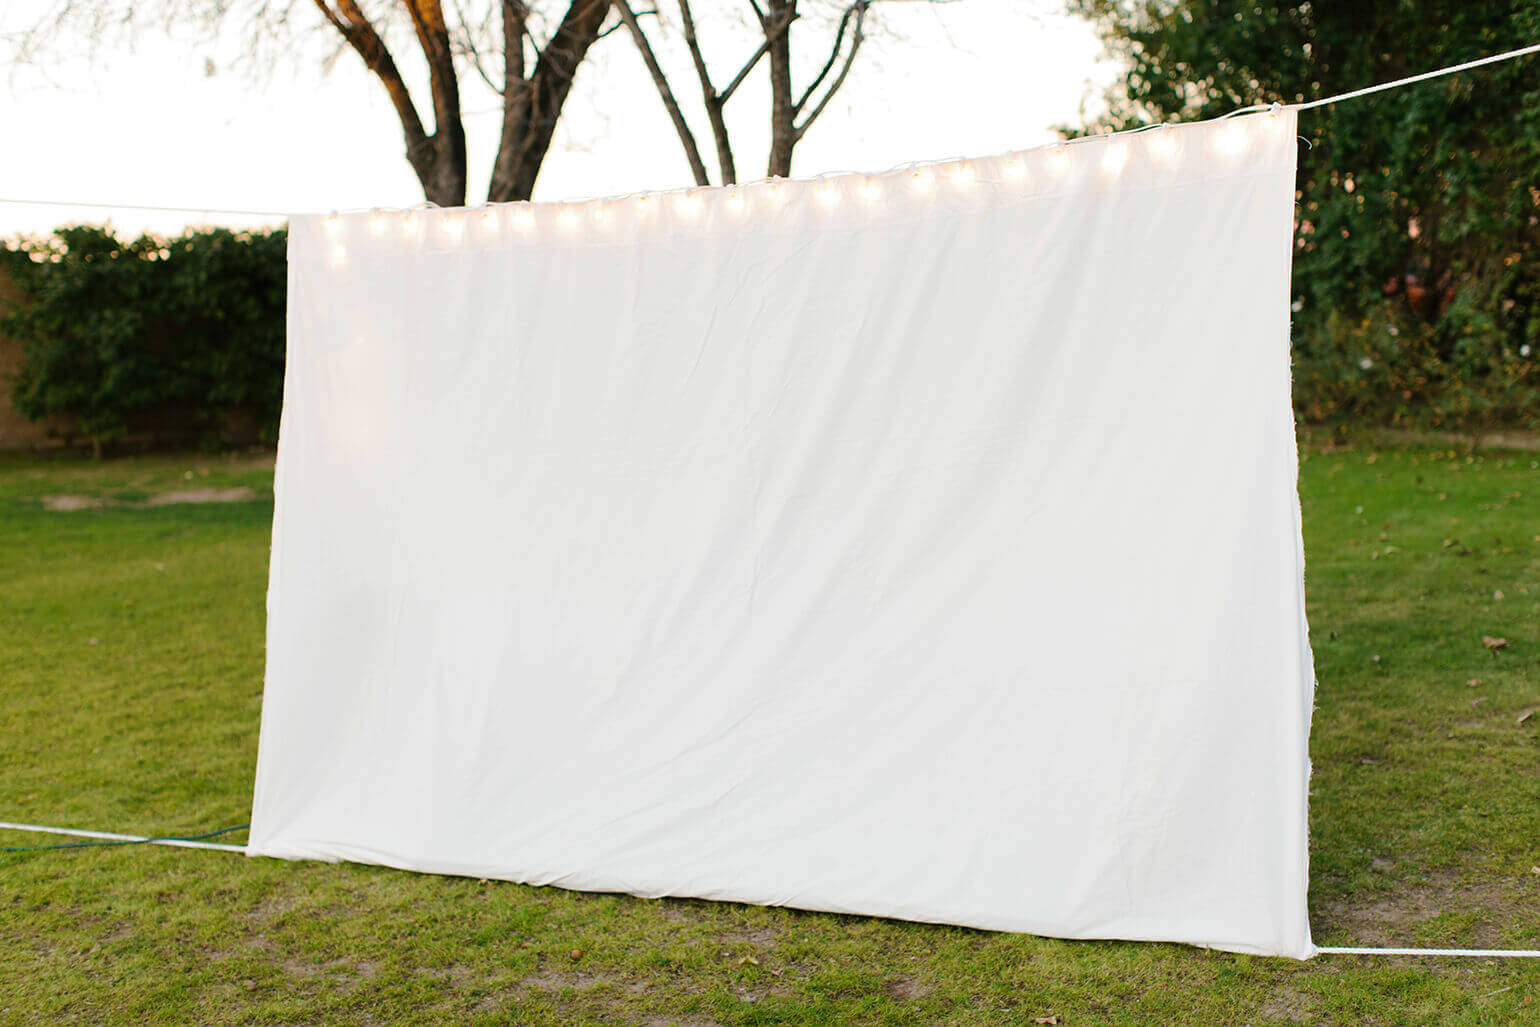 throw a backyard movie party off repellent